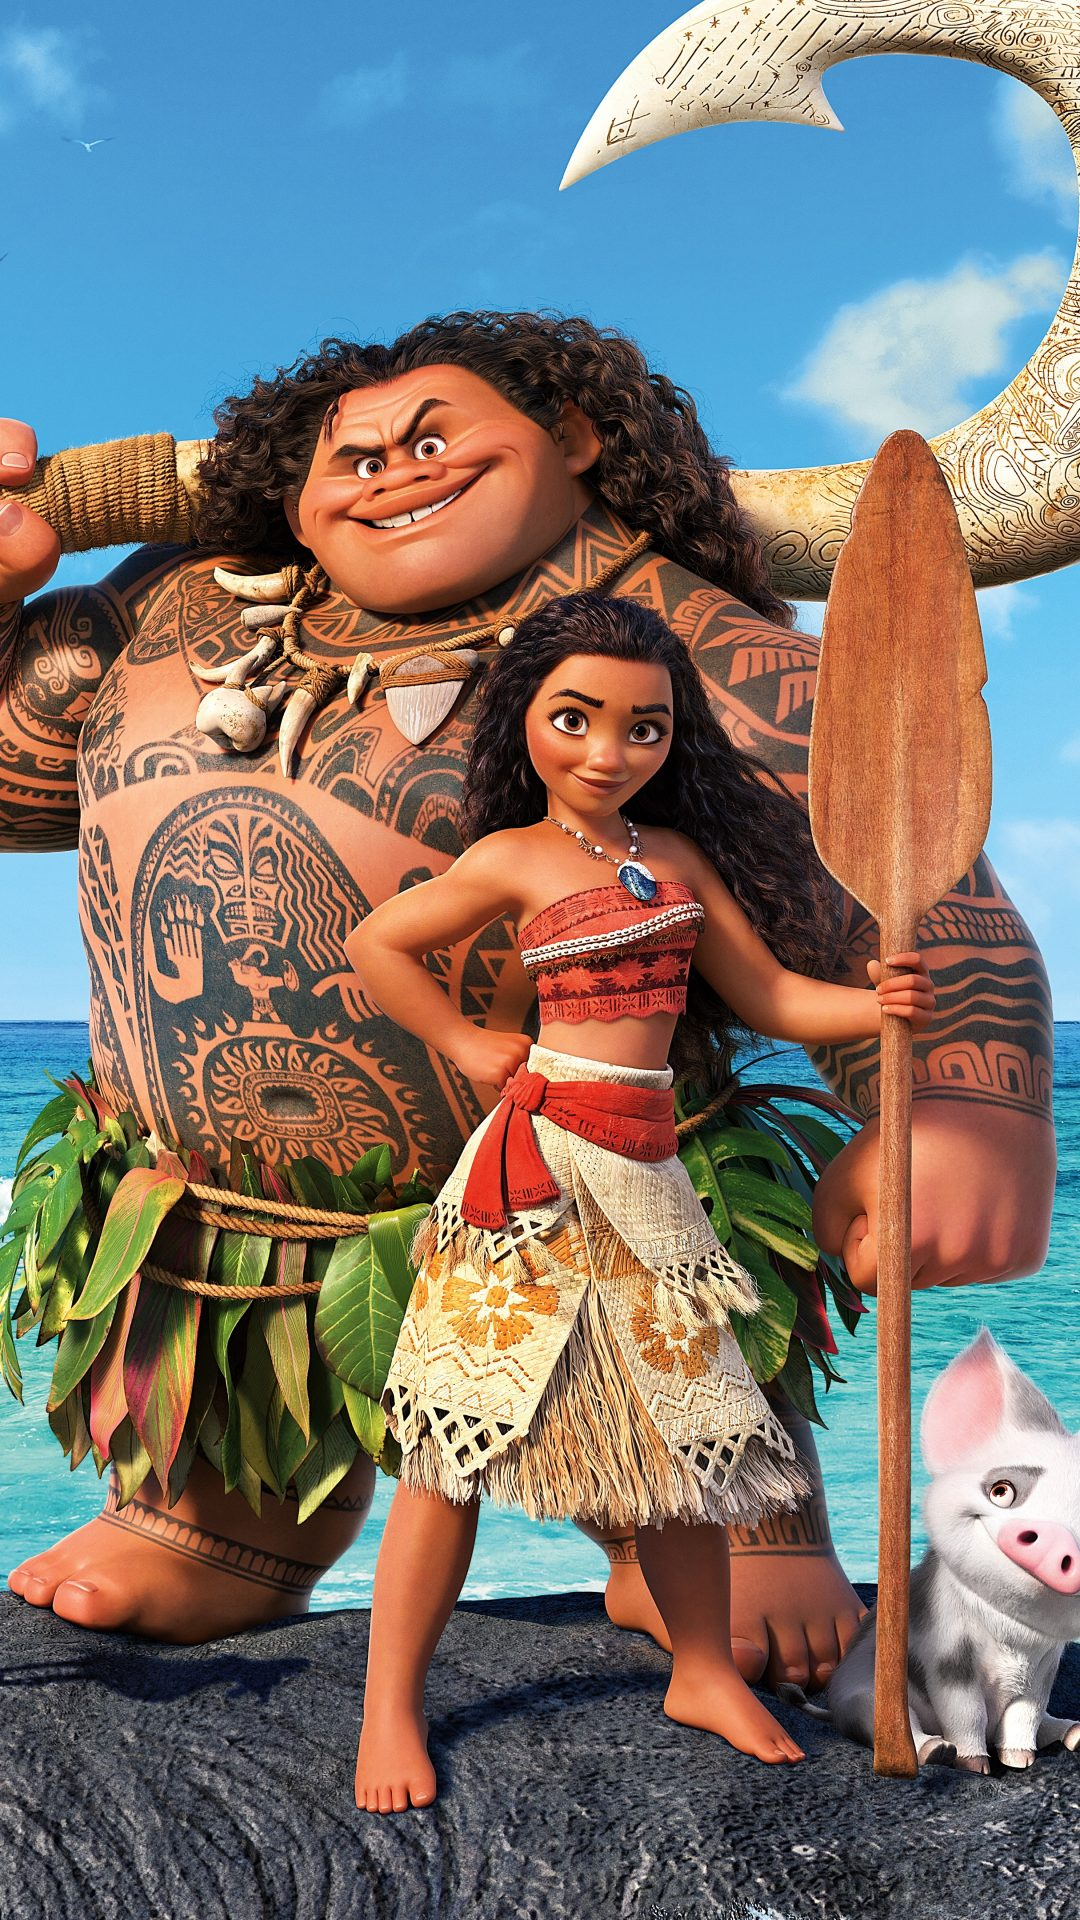 Hd Wallpaper Cars Disney Moana Movie Wallpaper 4k Hd Wallpaper Background